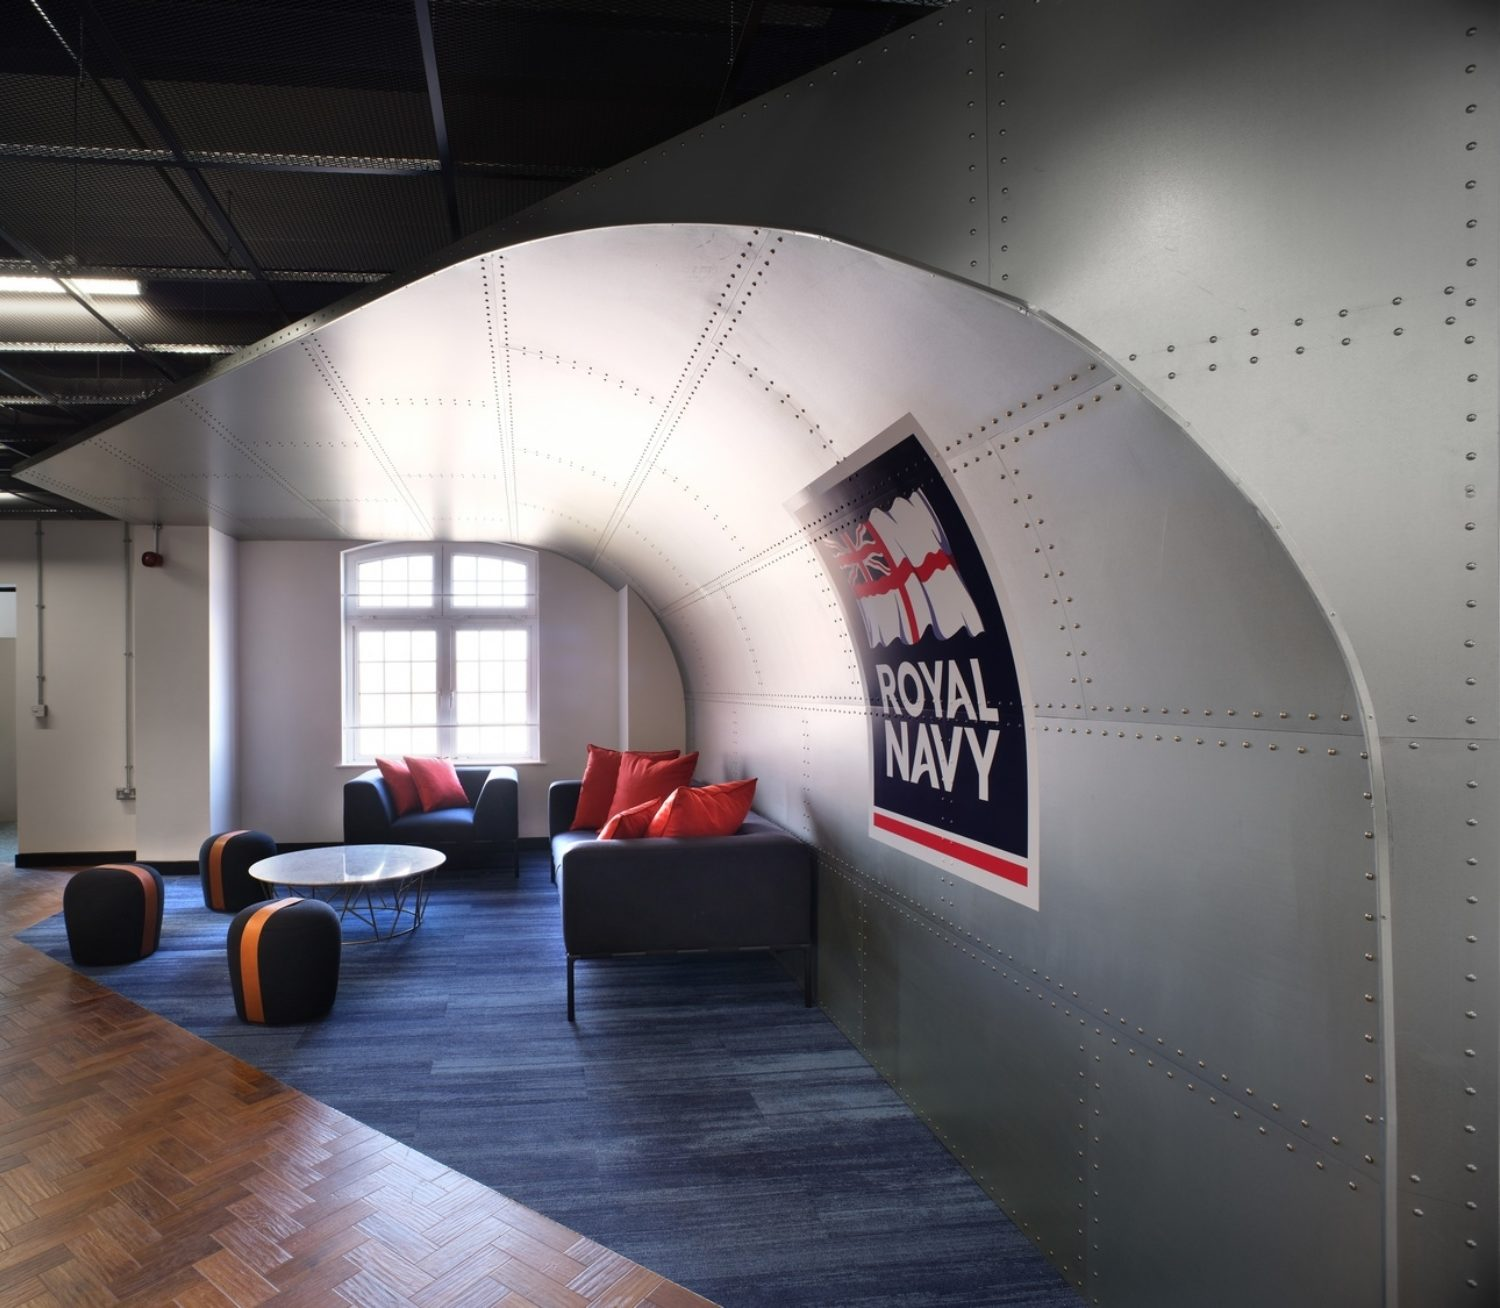 Royal Navy flexible office design